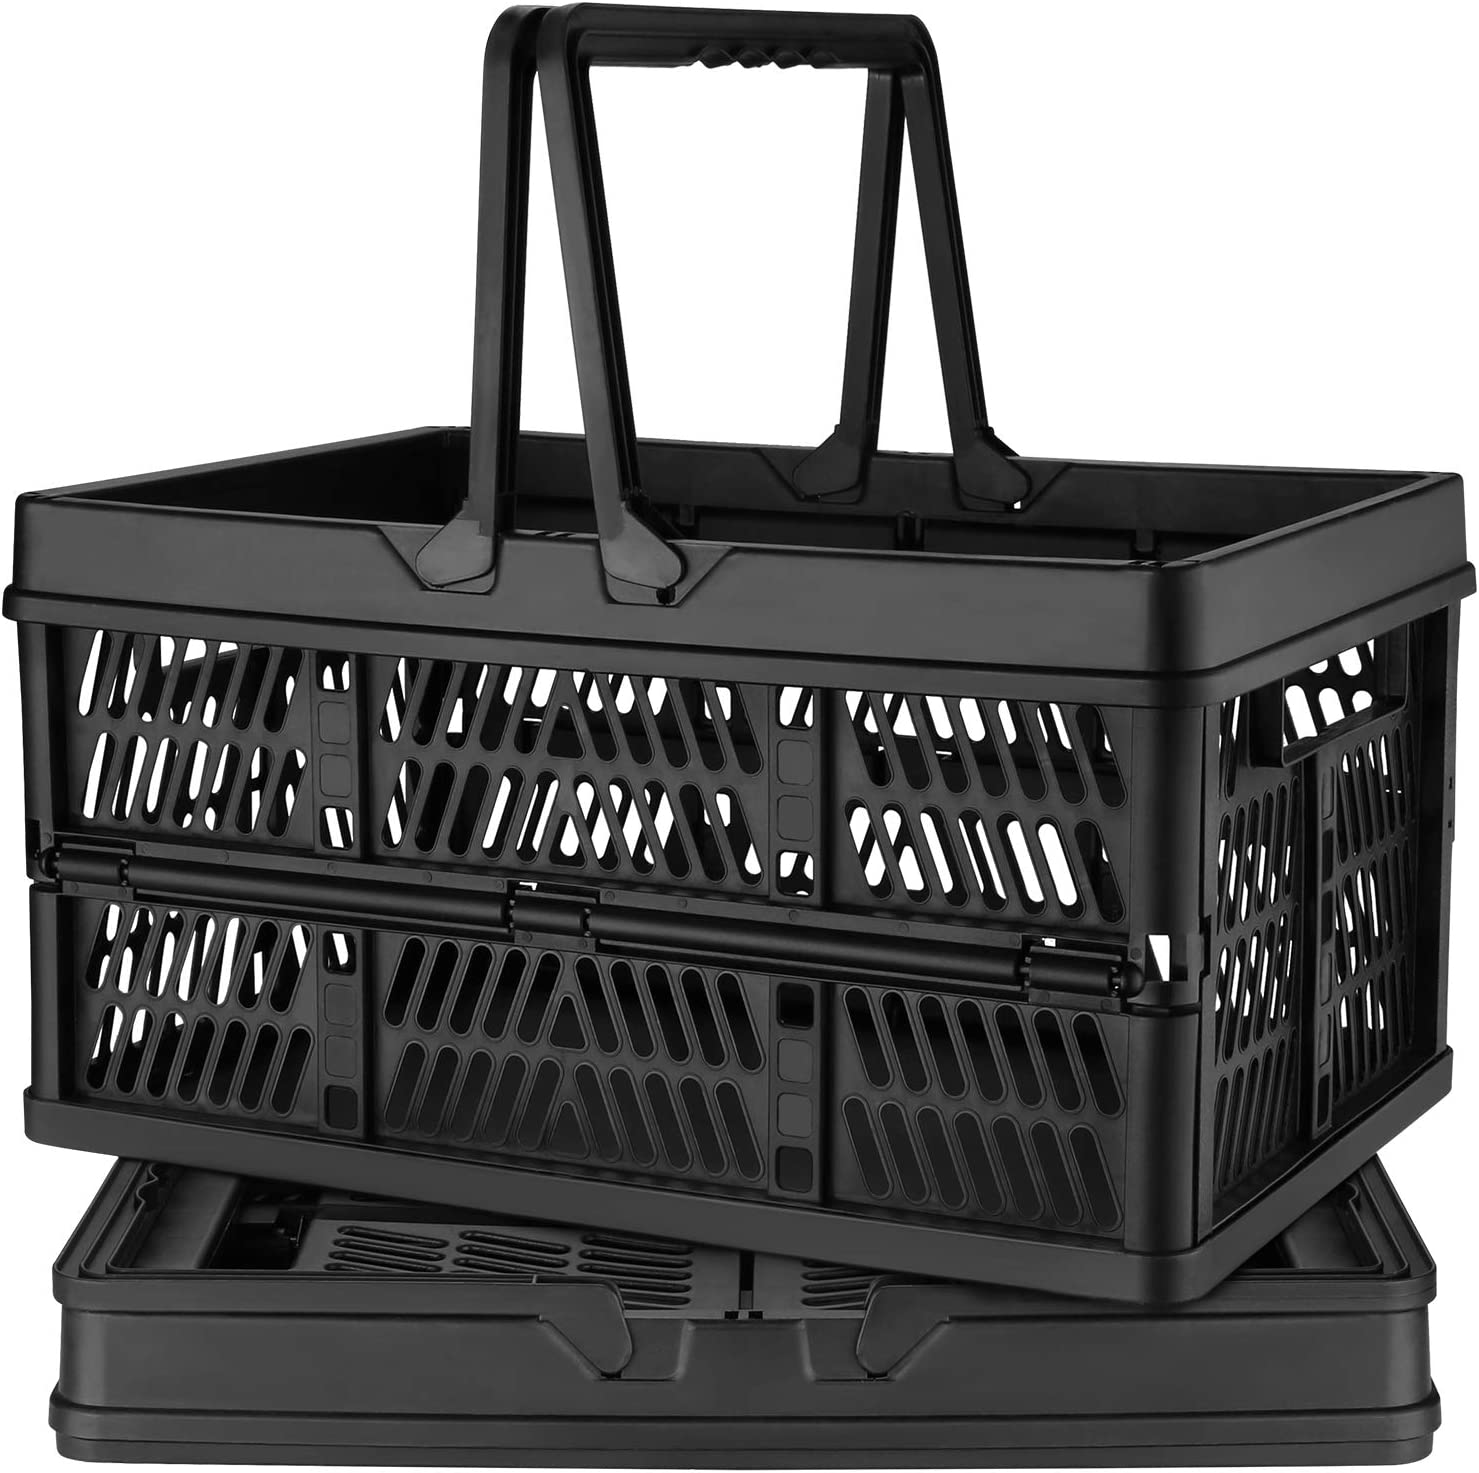 DEAOTEK 19 Liter Collapsible Shopping Baskets - Plastic Grocery Shopping Crate Small Folding Stackable Containers Bins with Handles, Pack of 2, Black